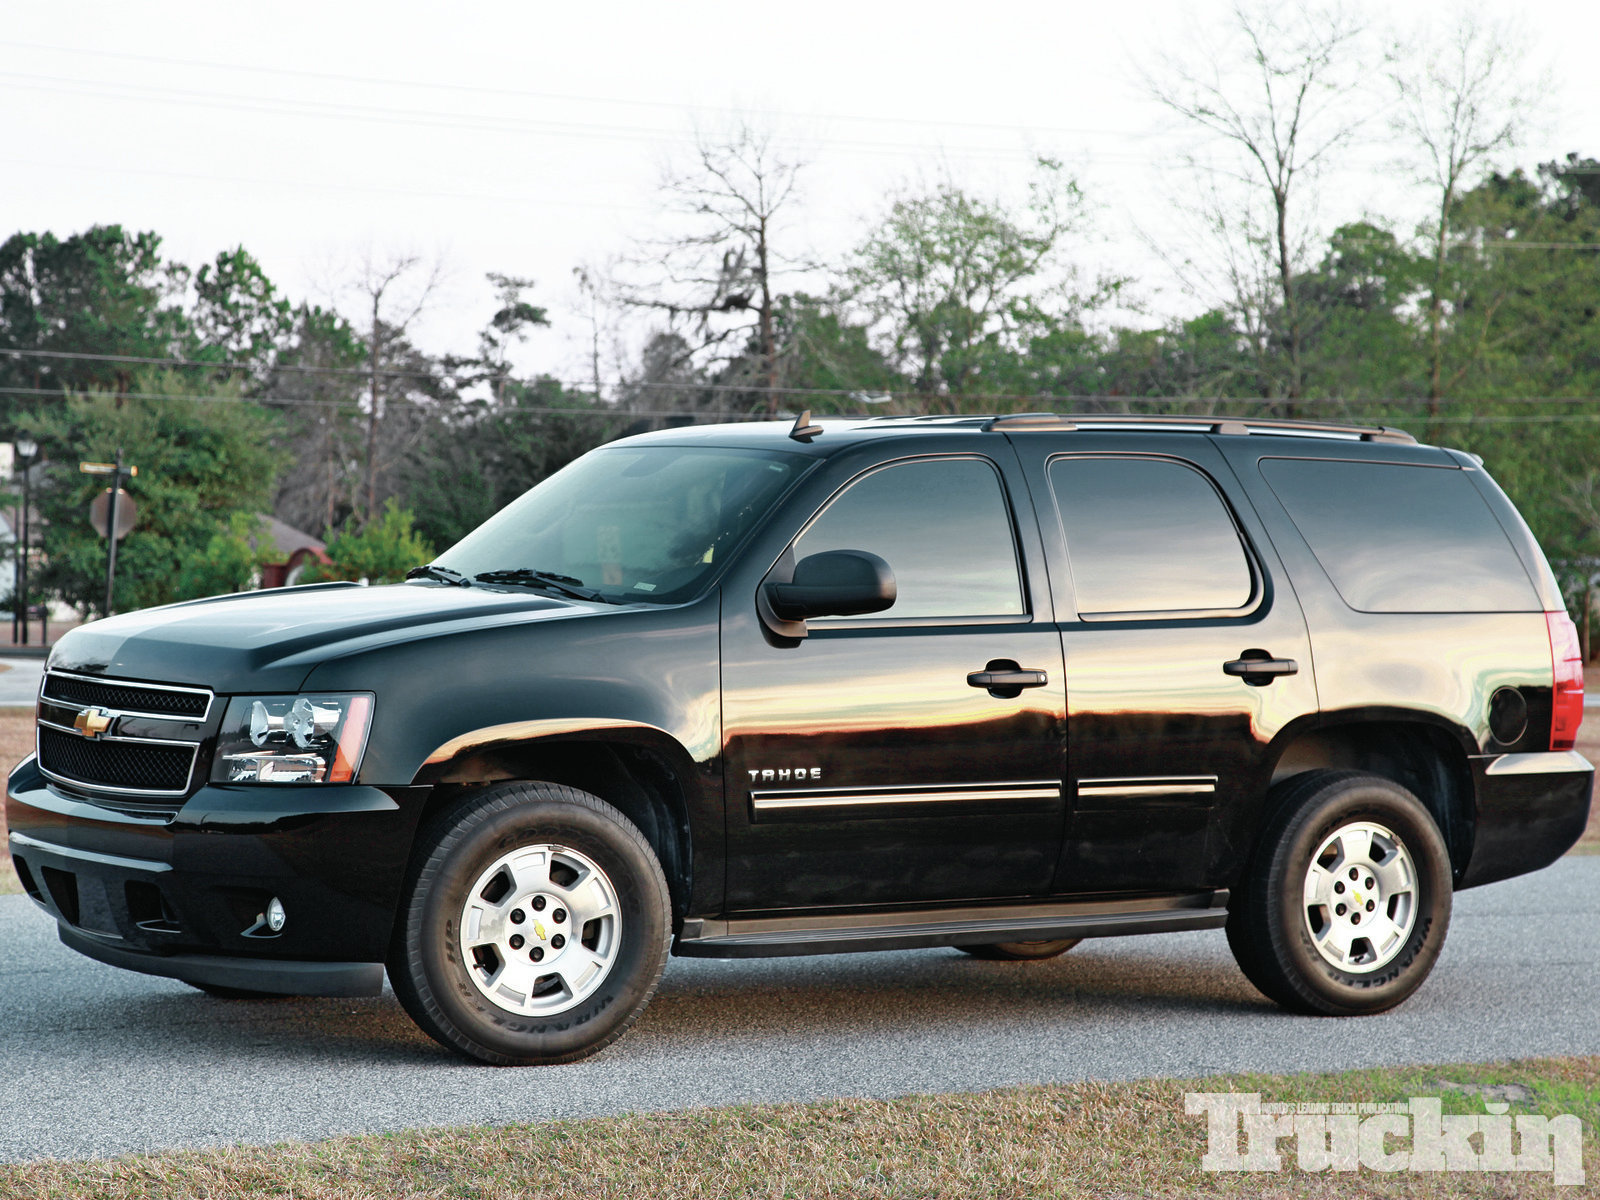 2010 chevrolet tahoe information and photos momentcar. Black Bedroom Furniture Sets. Home Design Ideas